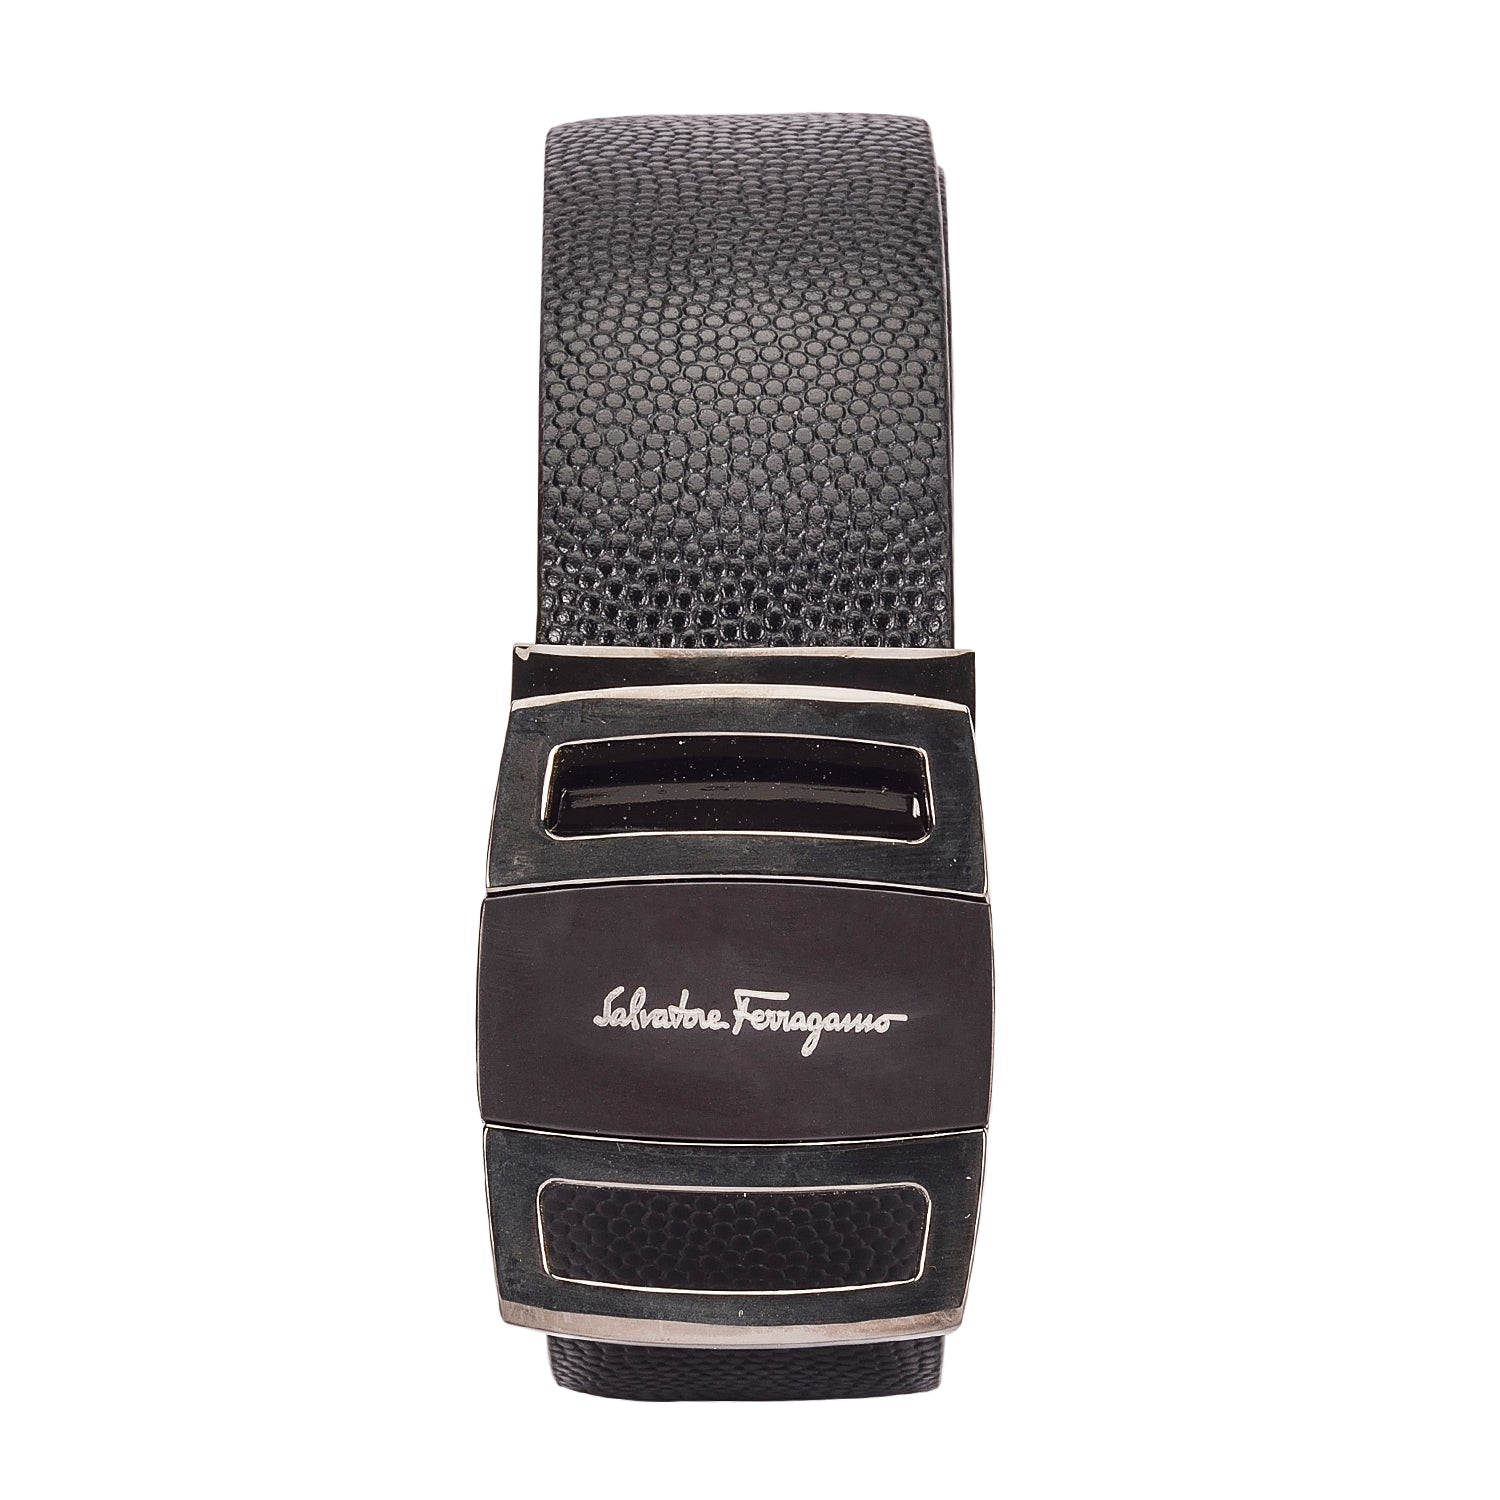 Ferragamo Elegant Black Leather Belt